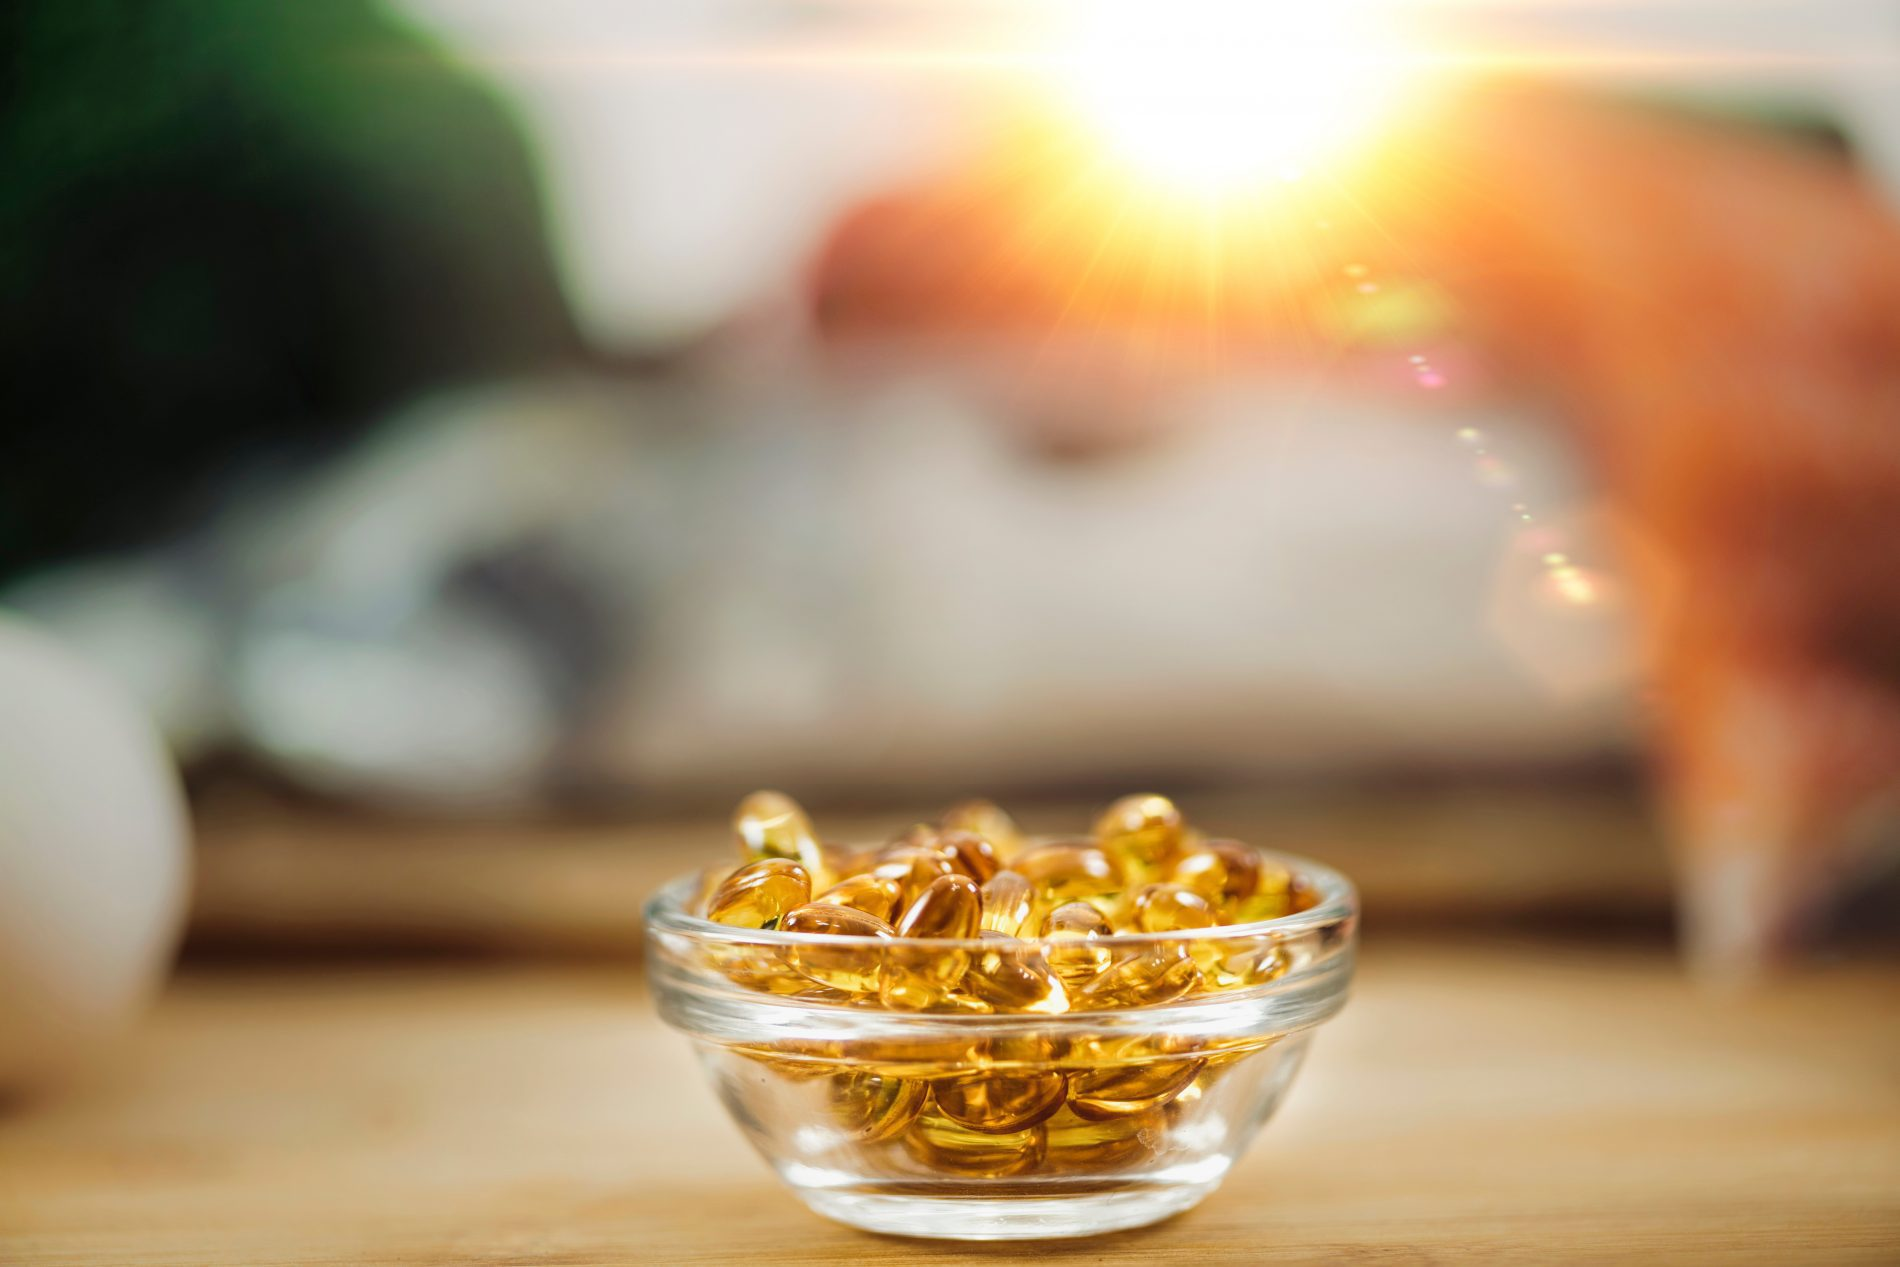 Vitamin D Supplements. Gel Capsules in Focus, Natural Sources of Vitamin D In Background